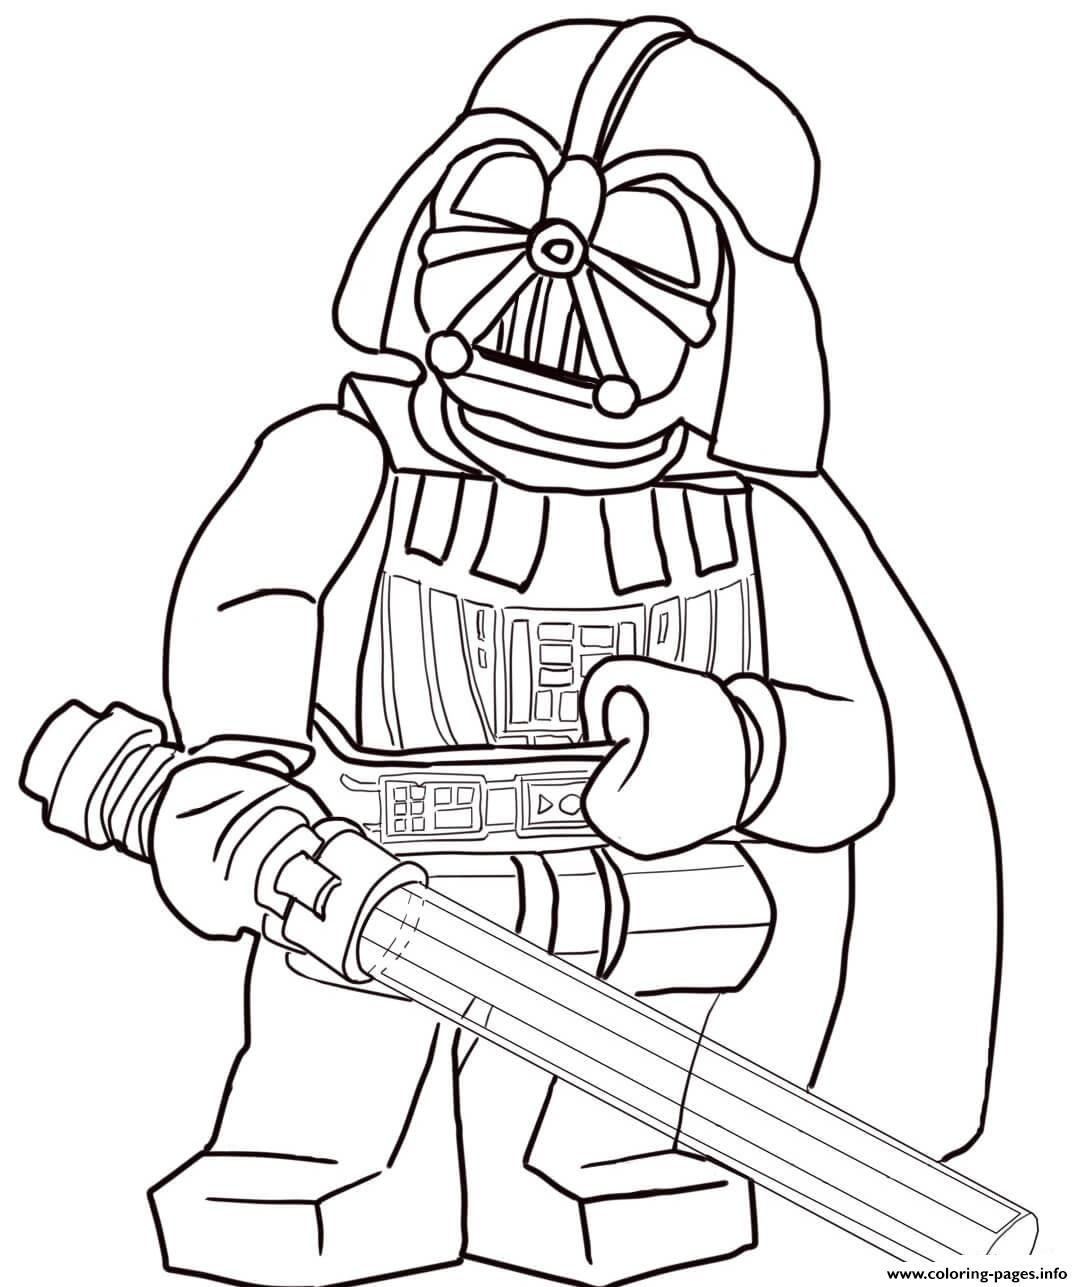 Print Lego Star Wars Darth Vader Coloring Pages Kleurplaten